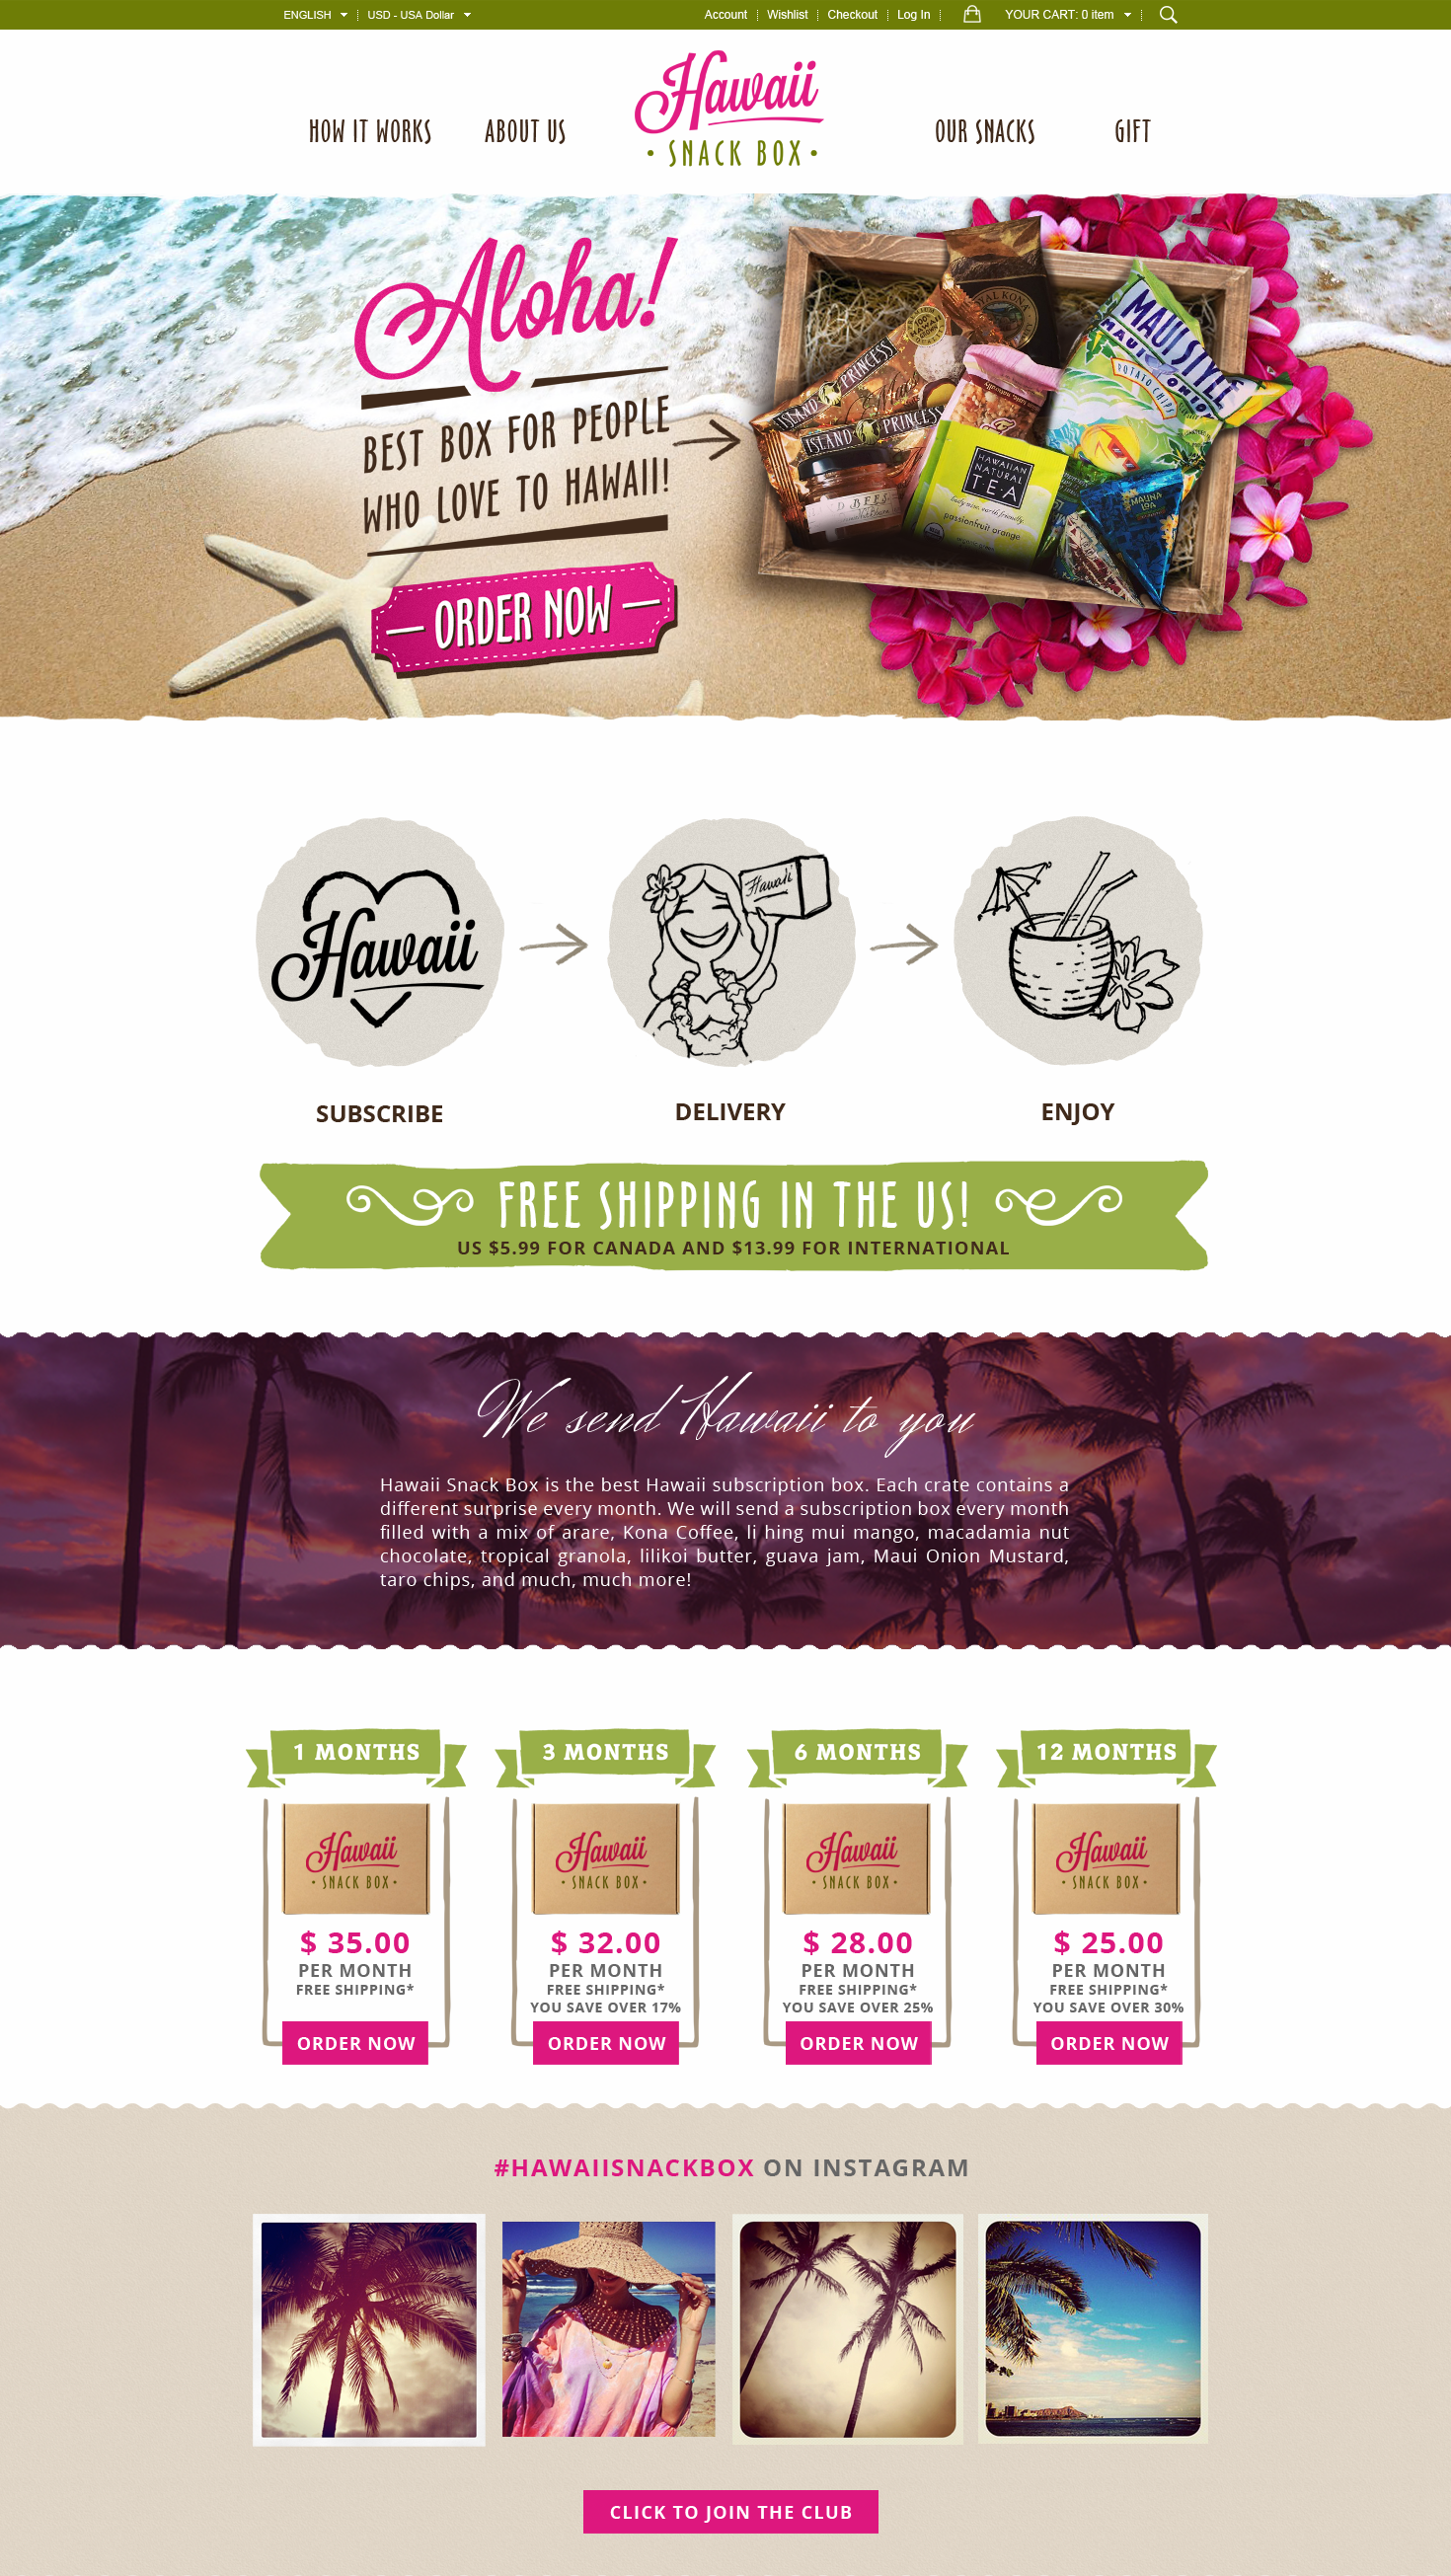 Hawaii Snack Box web design